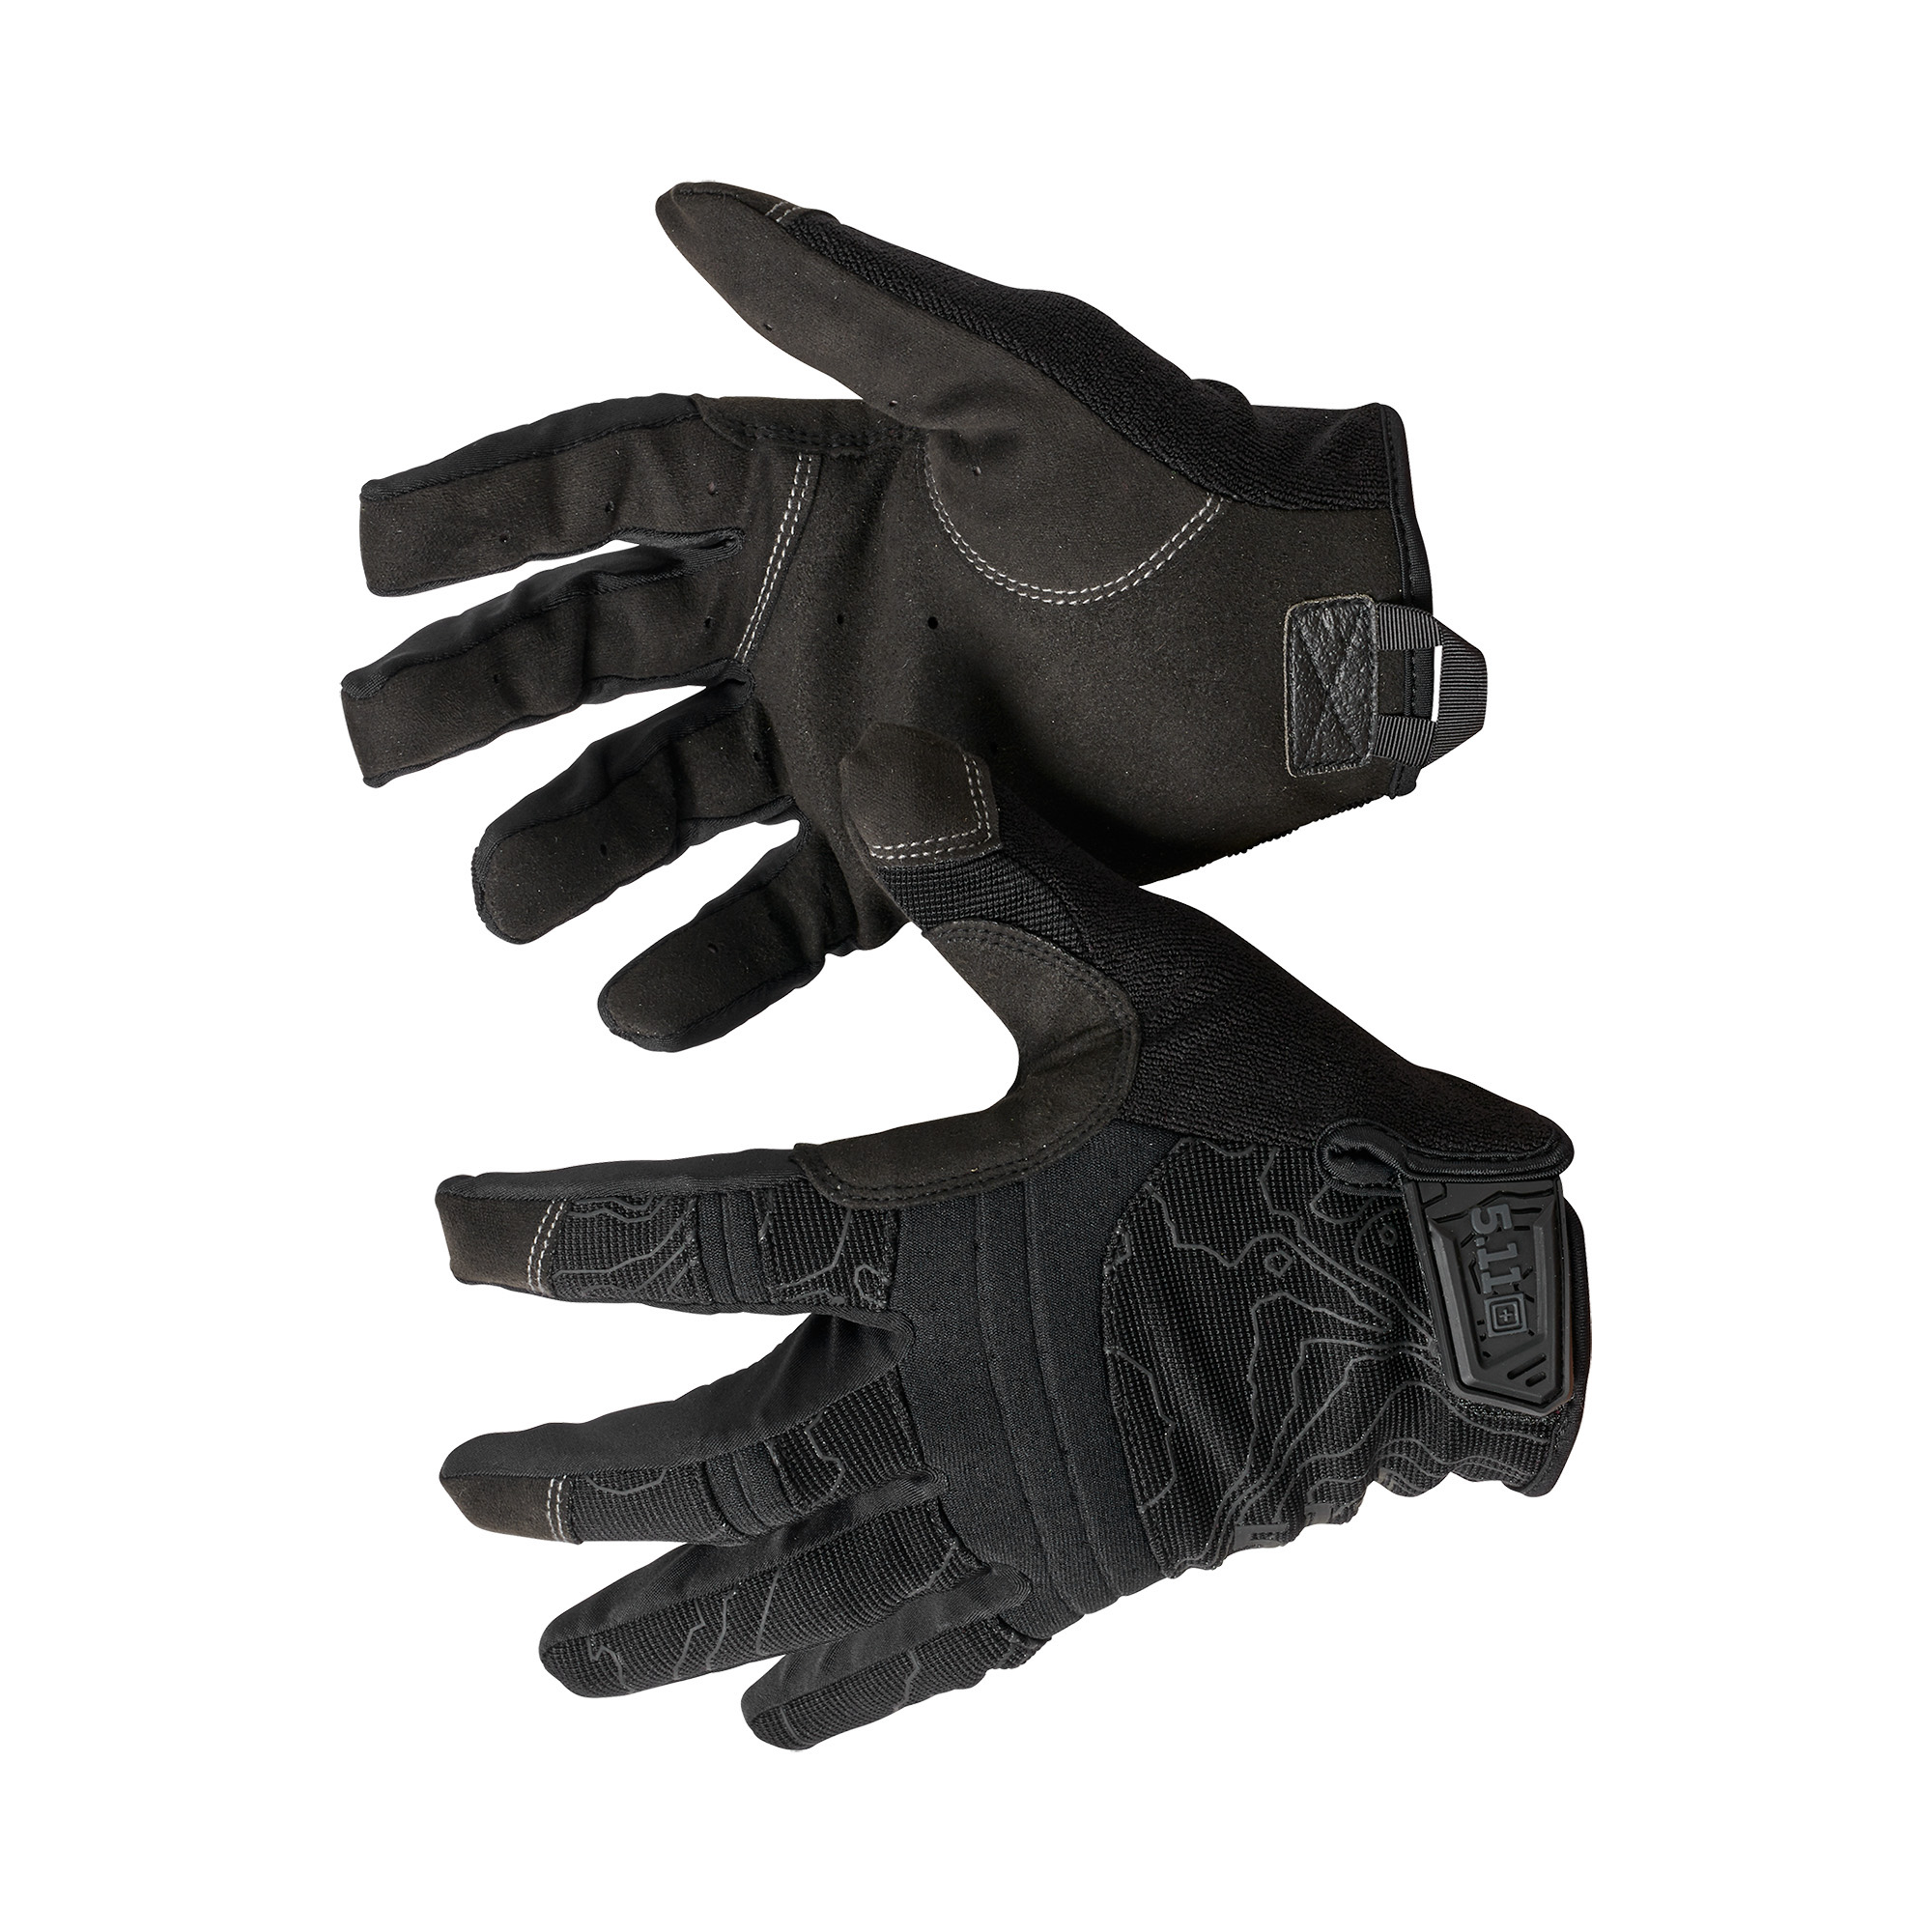 5.11 Tactical Men's Competition Shooting Glove (Black) thumbnail